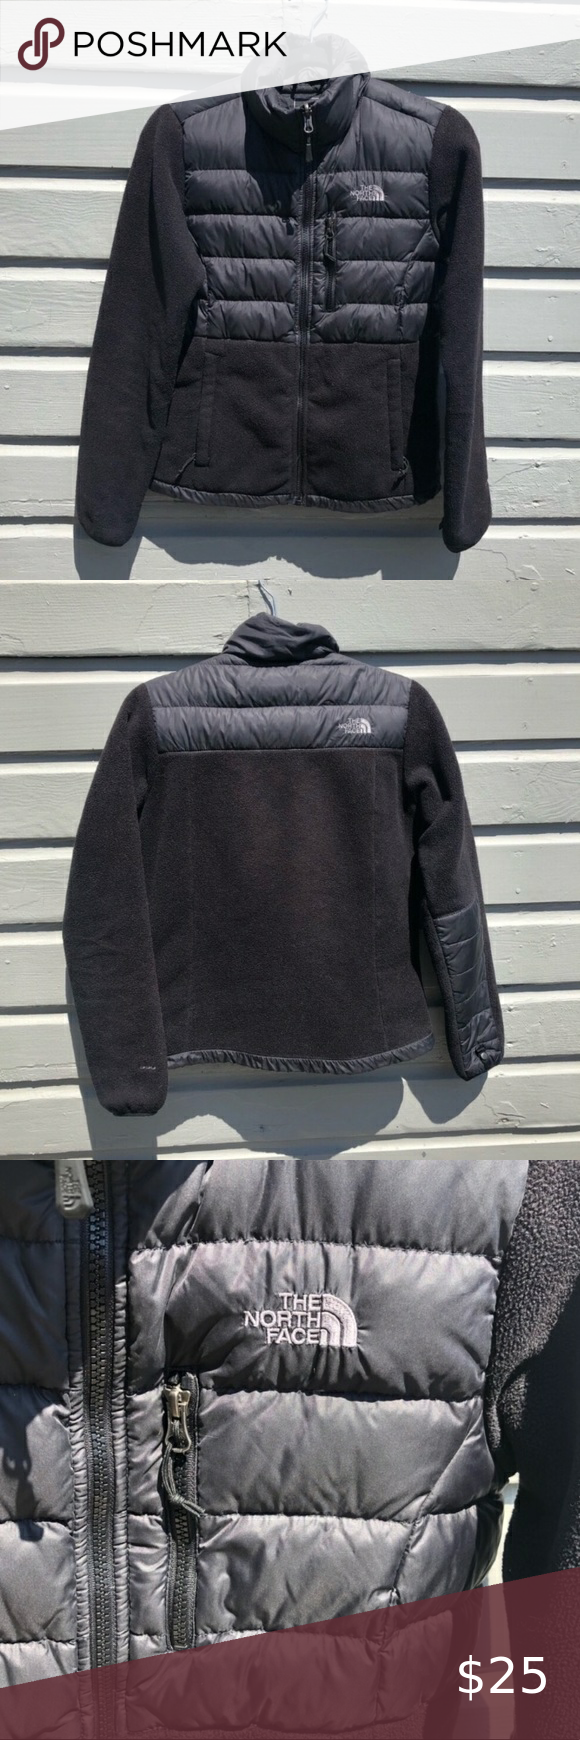 The North Face Fleece Jacket Condition Used Flaw On The Inside There Are 2 Holes And Piling Th North Face Fleece Jacket North Face Jacket North Face Fleece [ 1740 x 580 Pixel ]